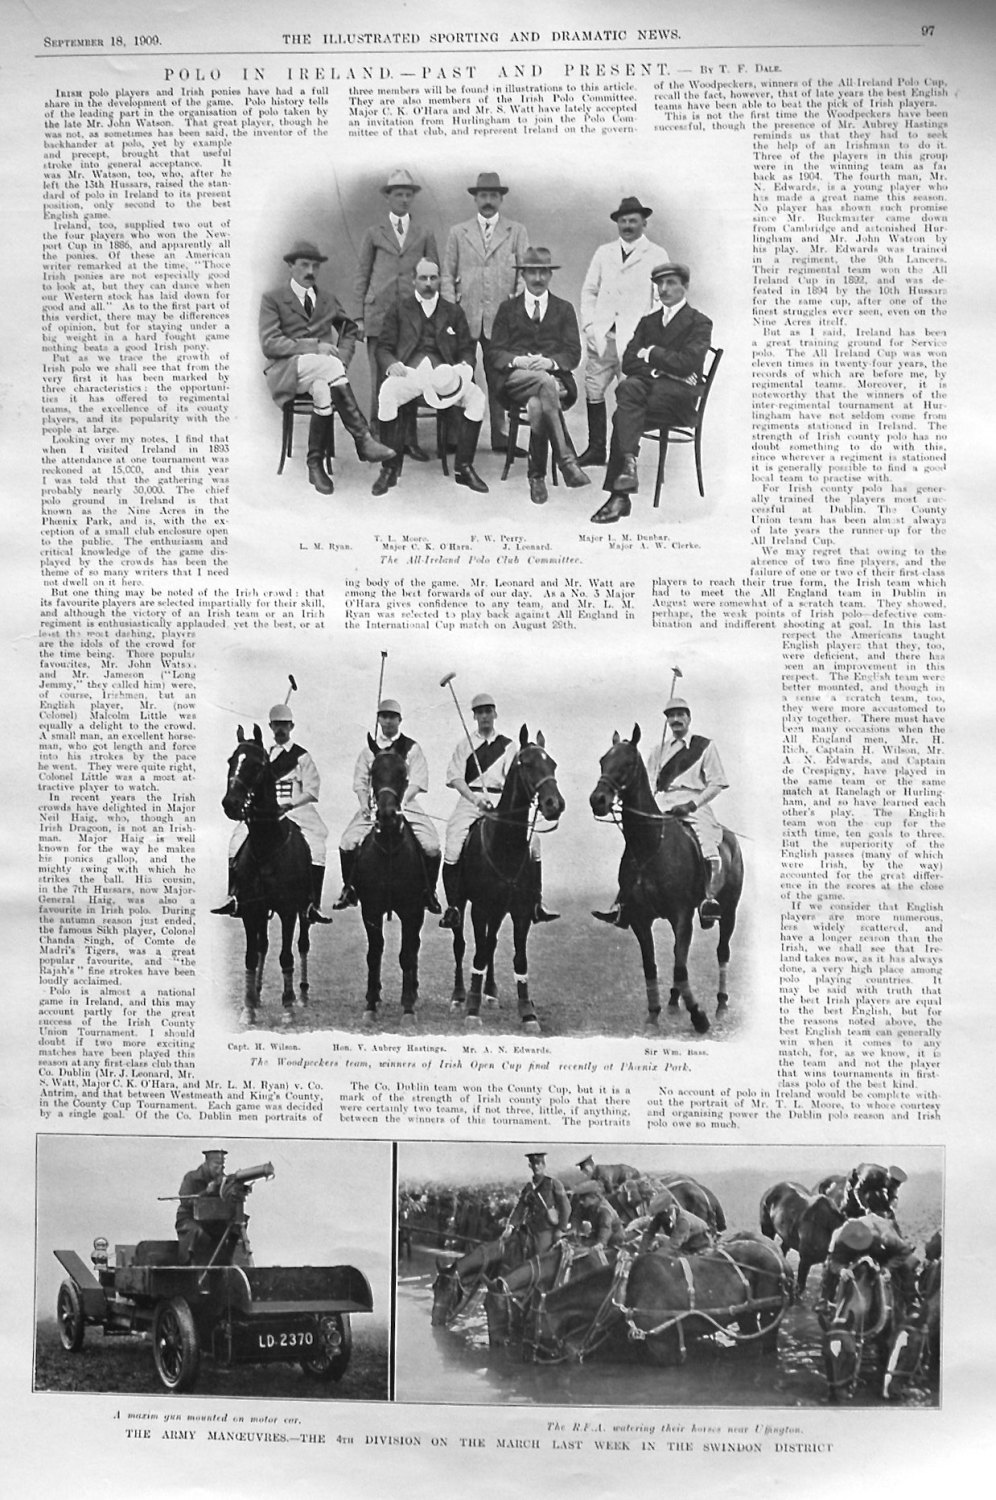 Polo in Ireland. - Past and Present. - By T.F. Dale. 1909